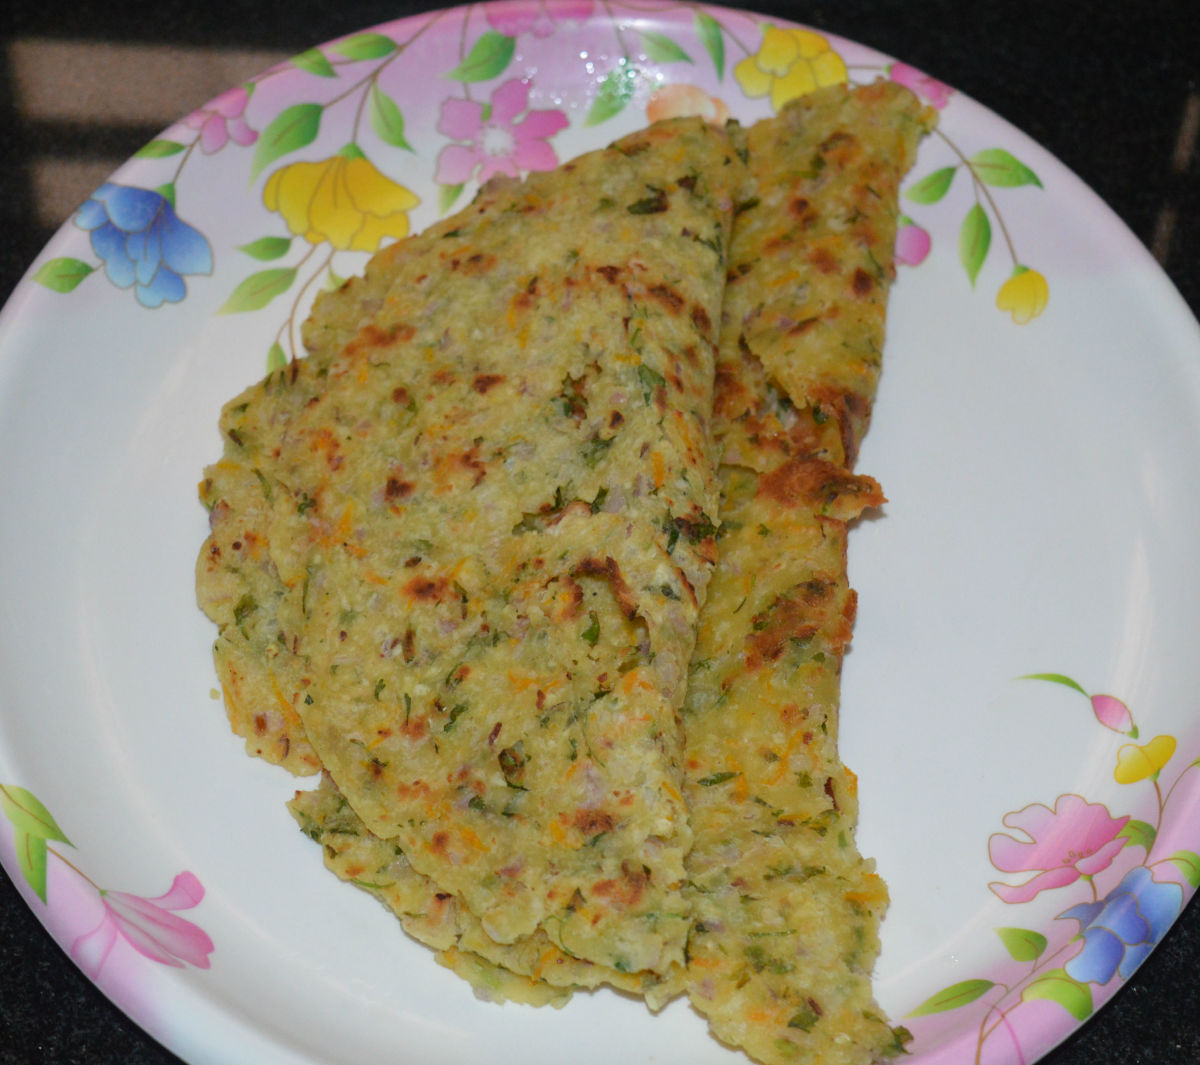 How to Make a Spicy Rice Flour Flatbread or Masala Akki Rotti